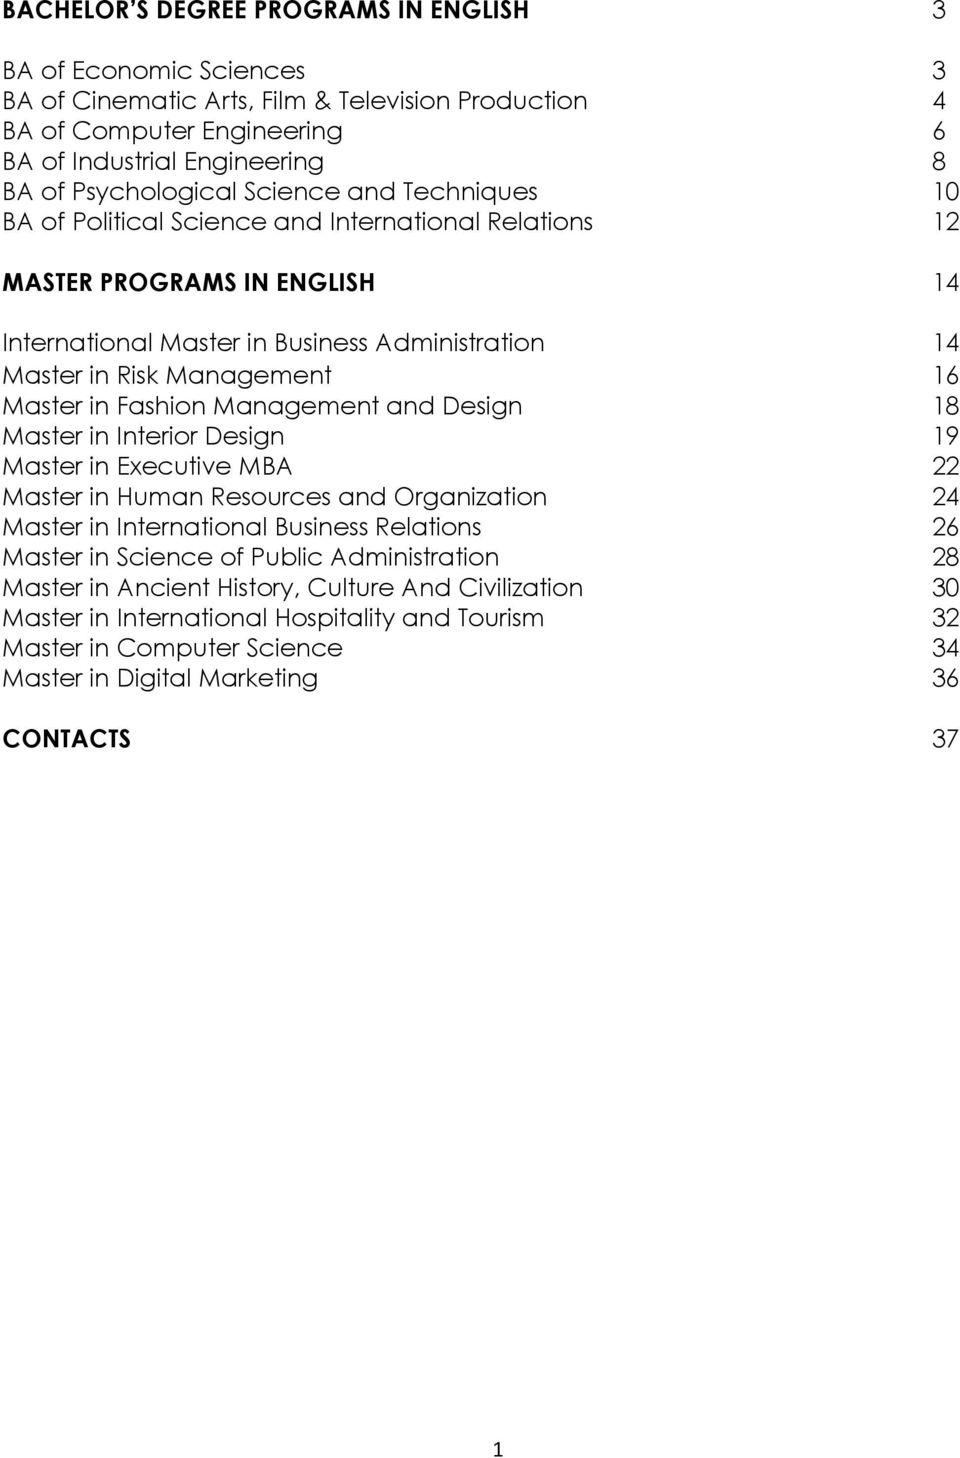 in Fashion Management and Design 18 Master in Interior Design 19 Master in Executive MBA 22 Master in Human Resources and Organization 24 Master in International Business Relations 26 Master in